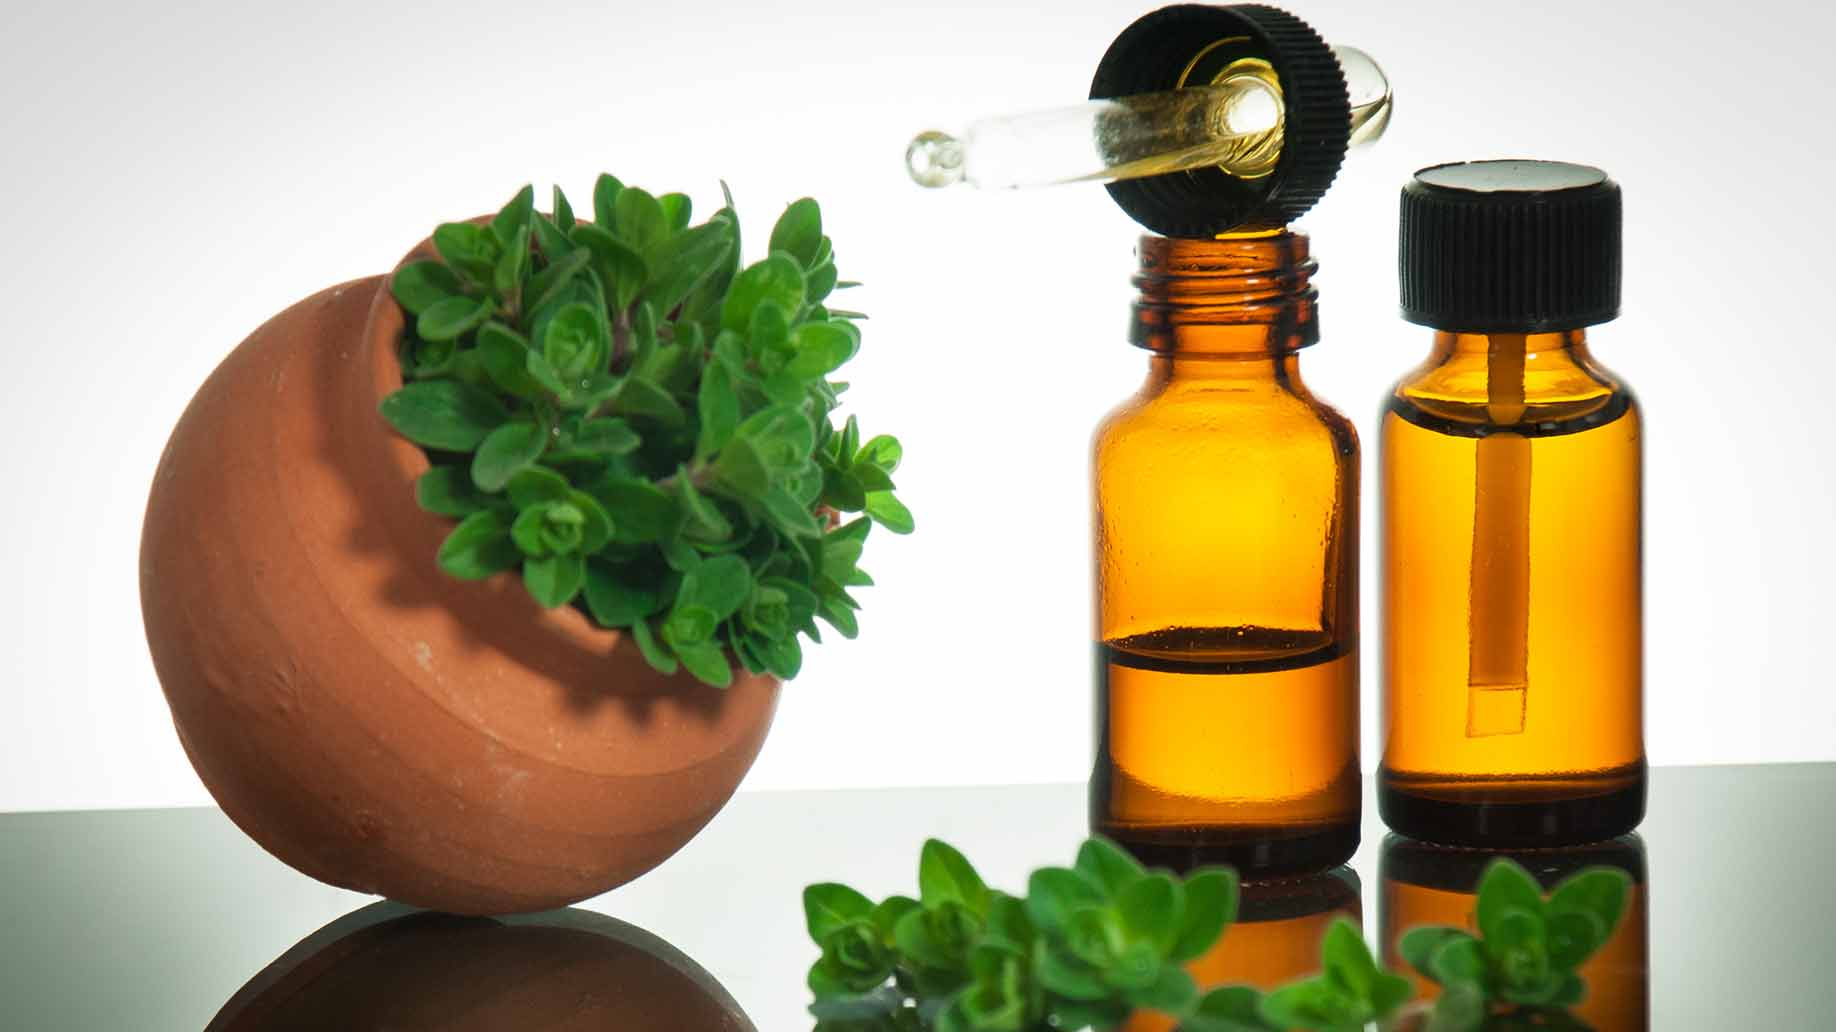 pure oregano essential oil dropper and plant